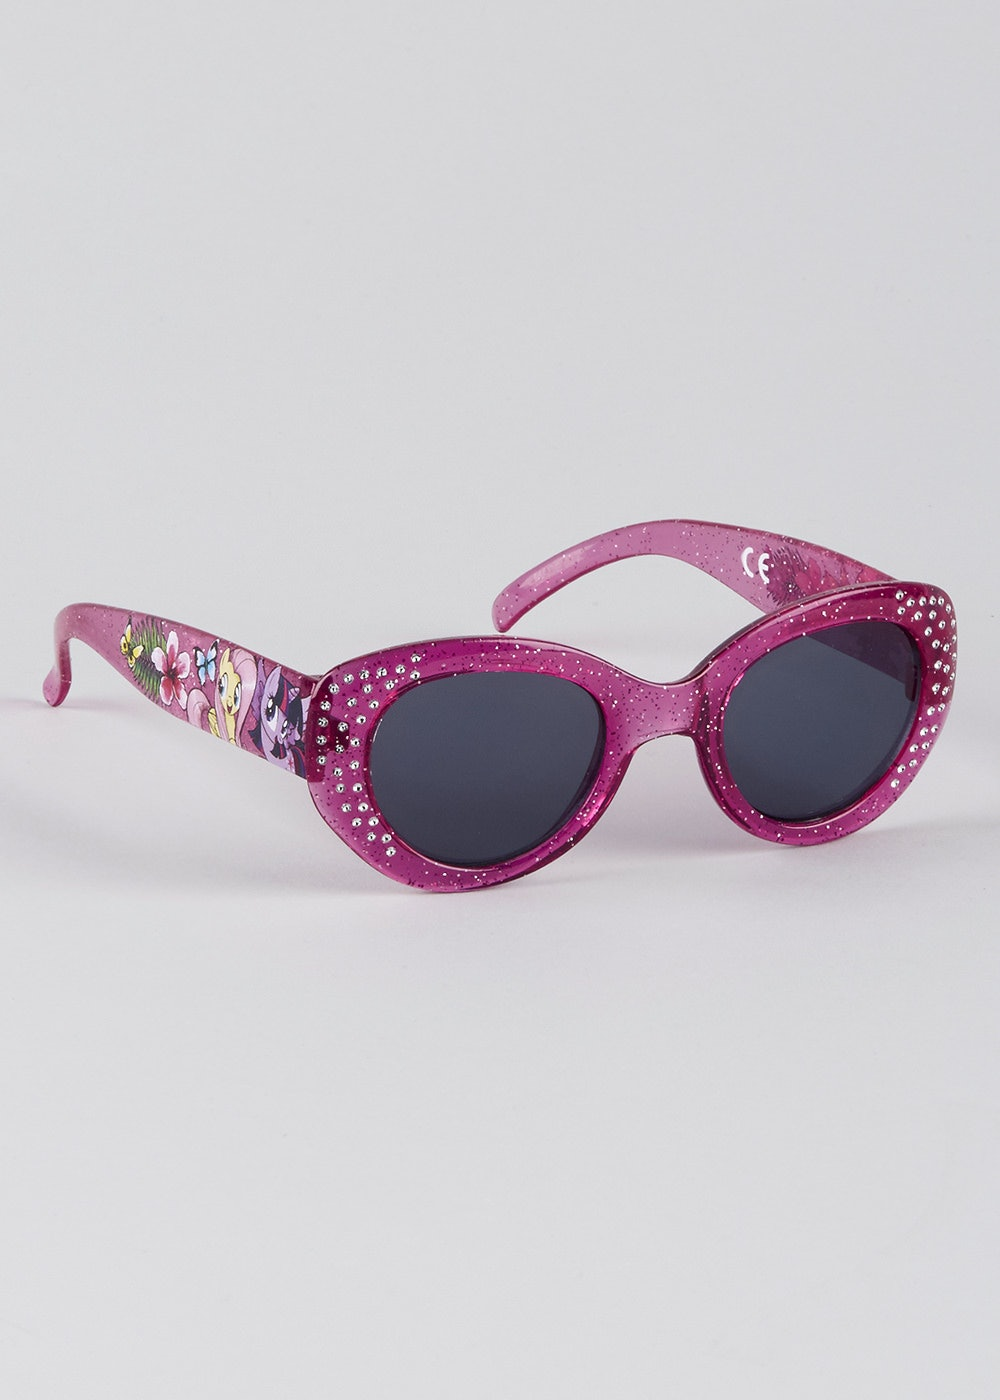 Mens gloves at matalan - Kids My Little Pony Sunglasses One Size